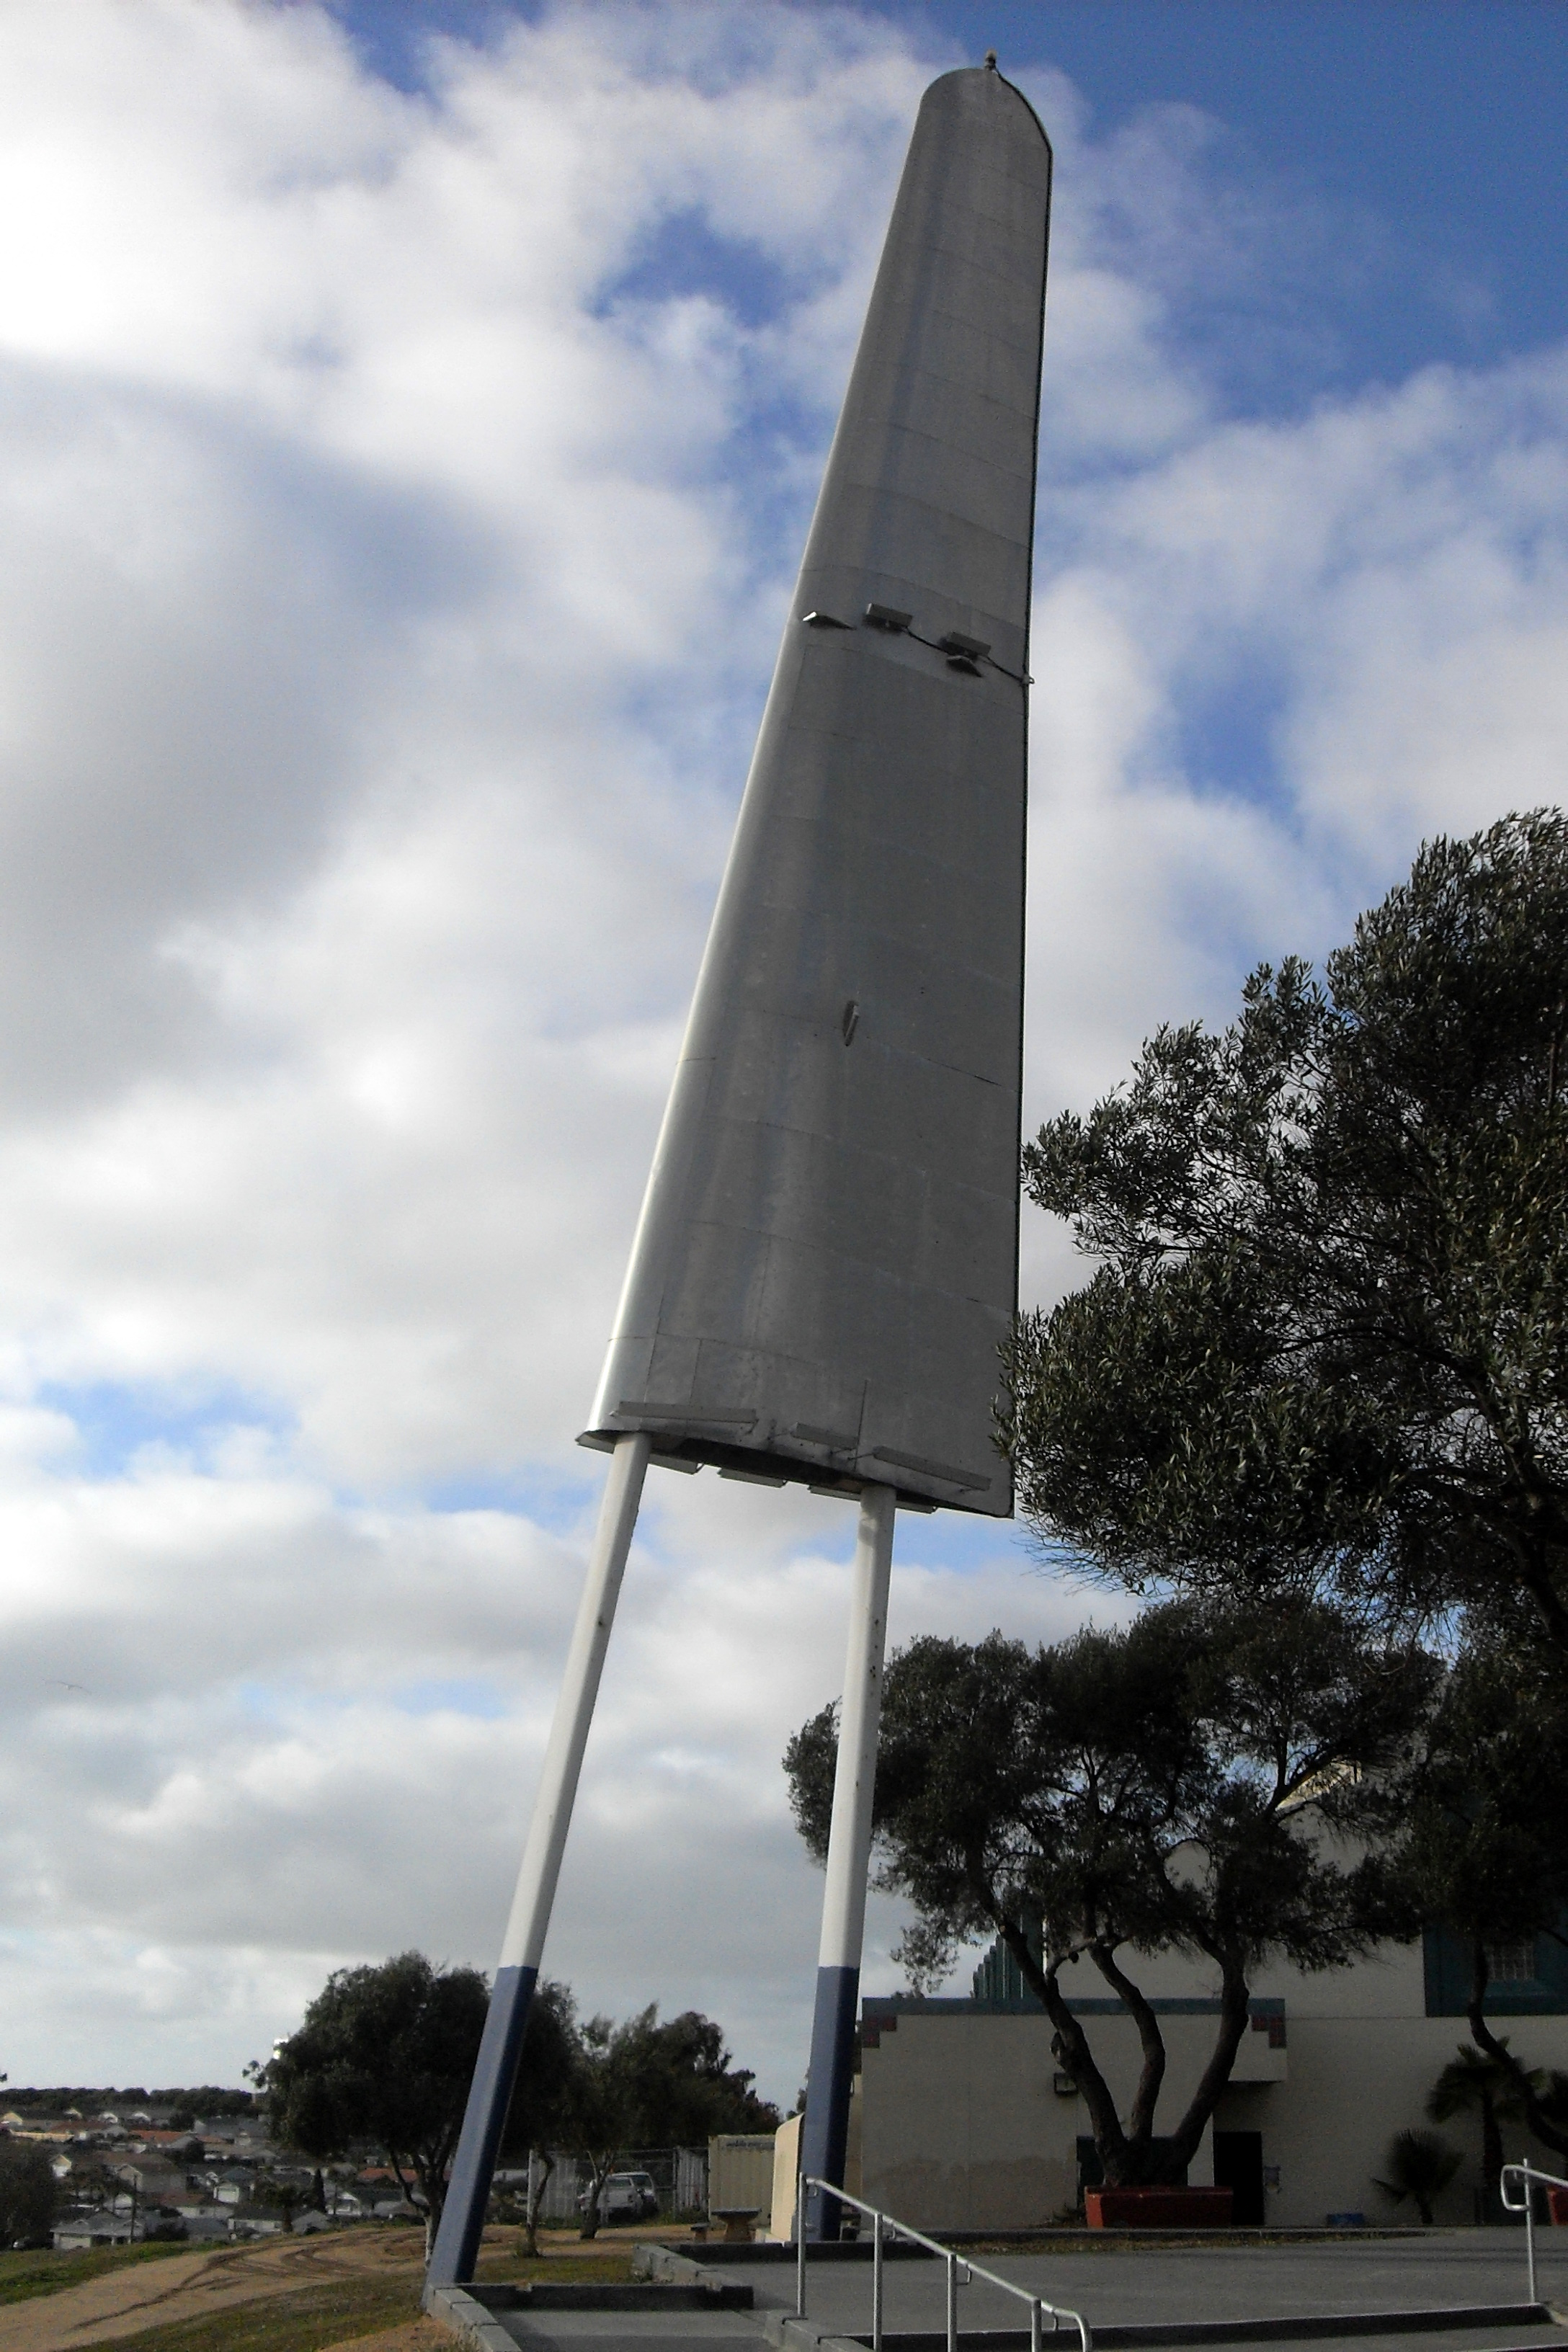 Silver Wing monument at Montgomery-Waller Recreation Center in Otay Mesa, San Diego, California